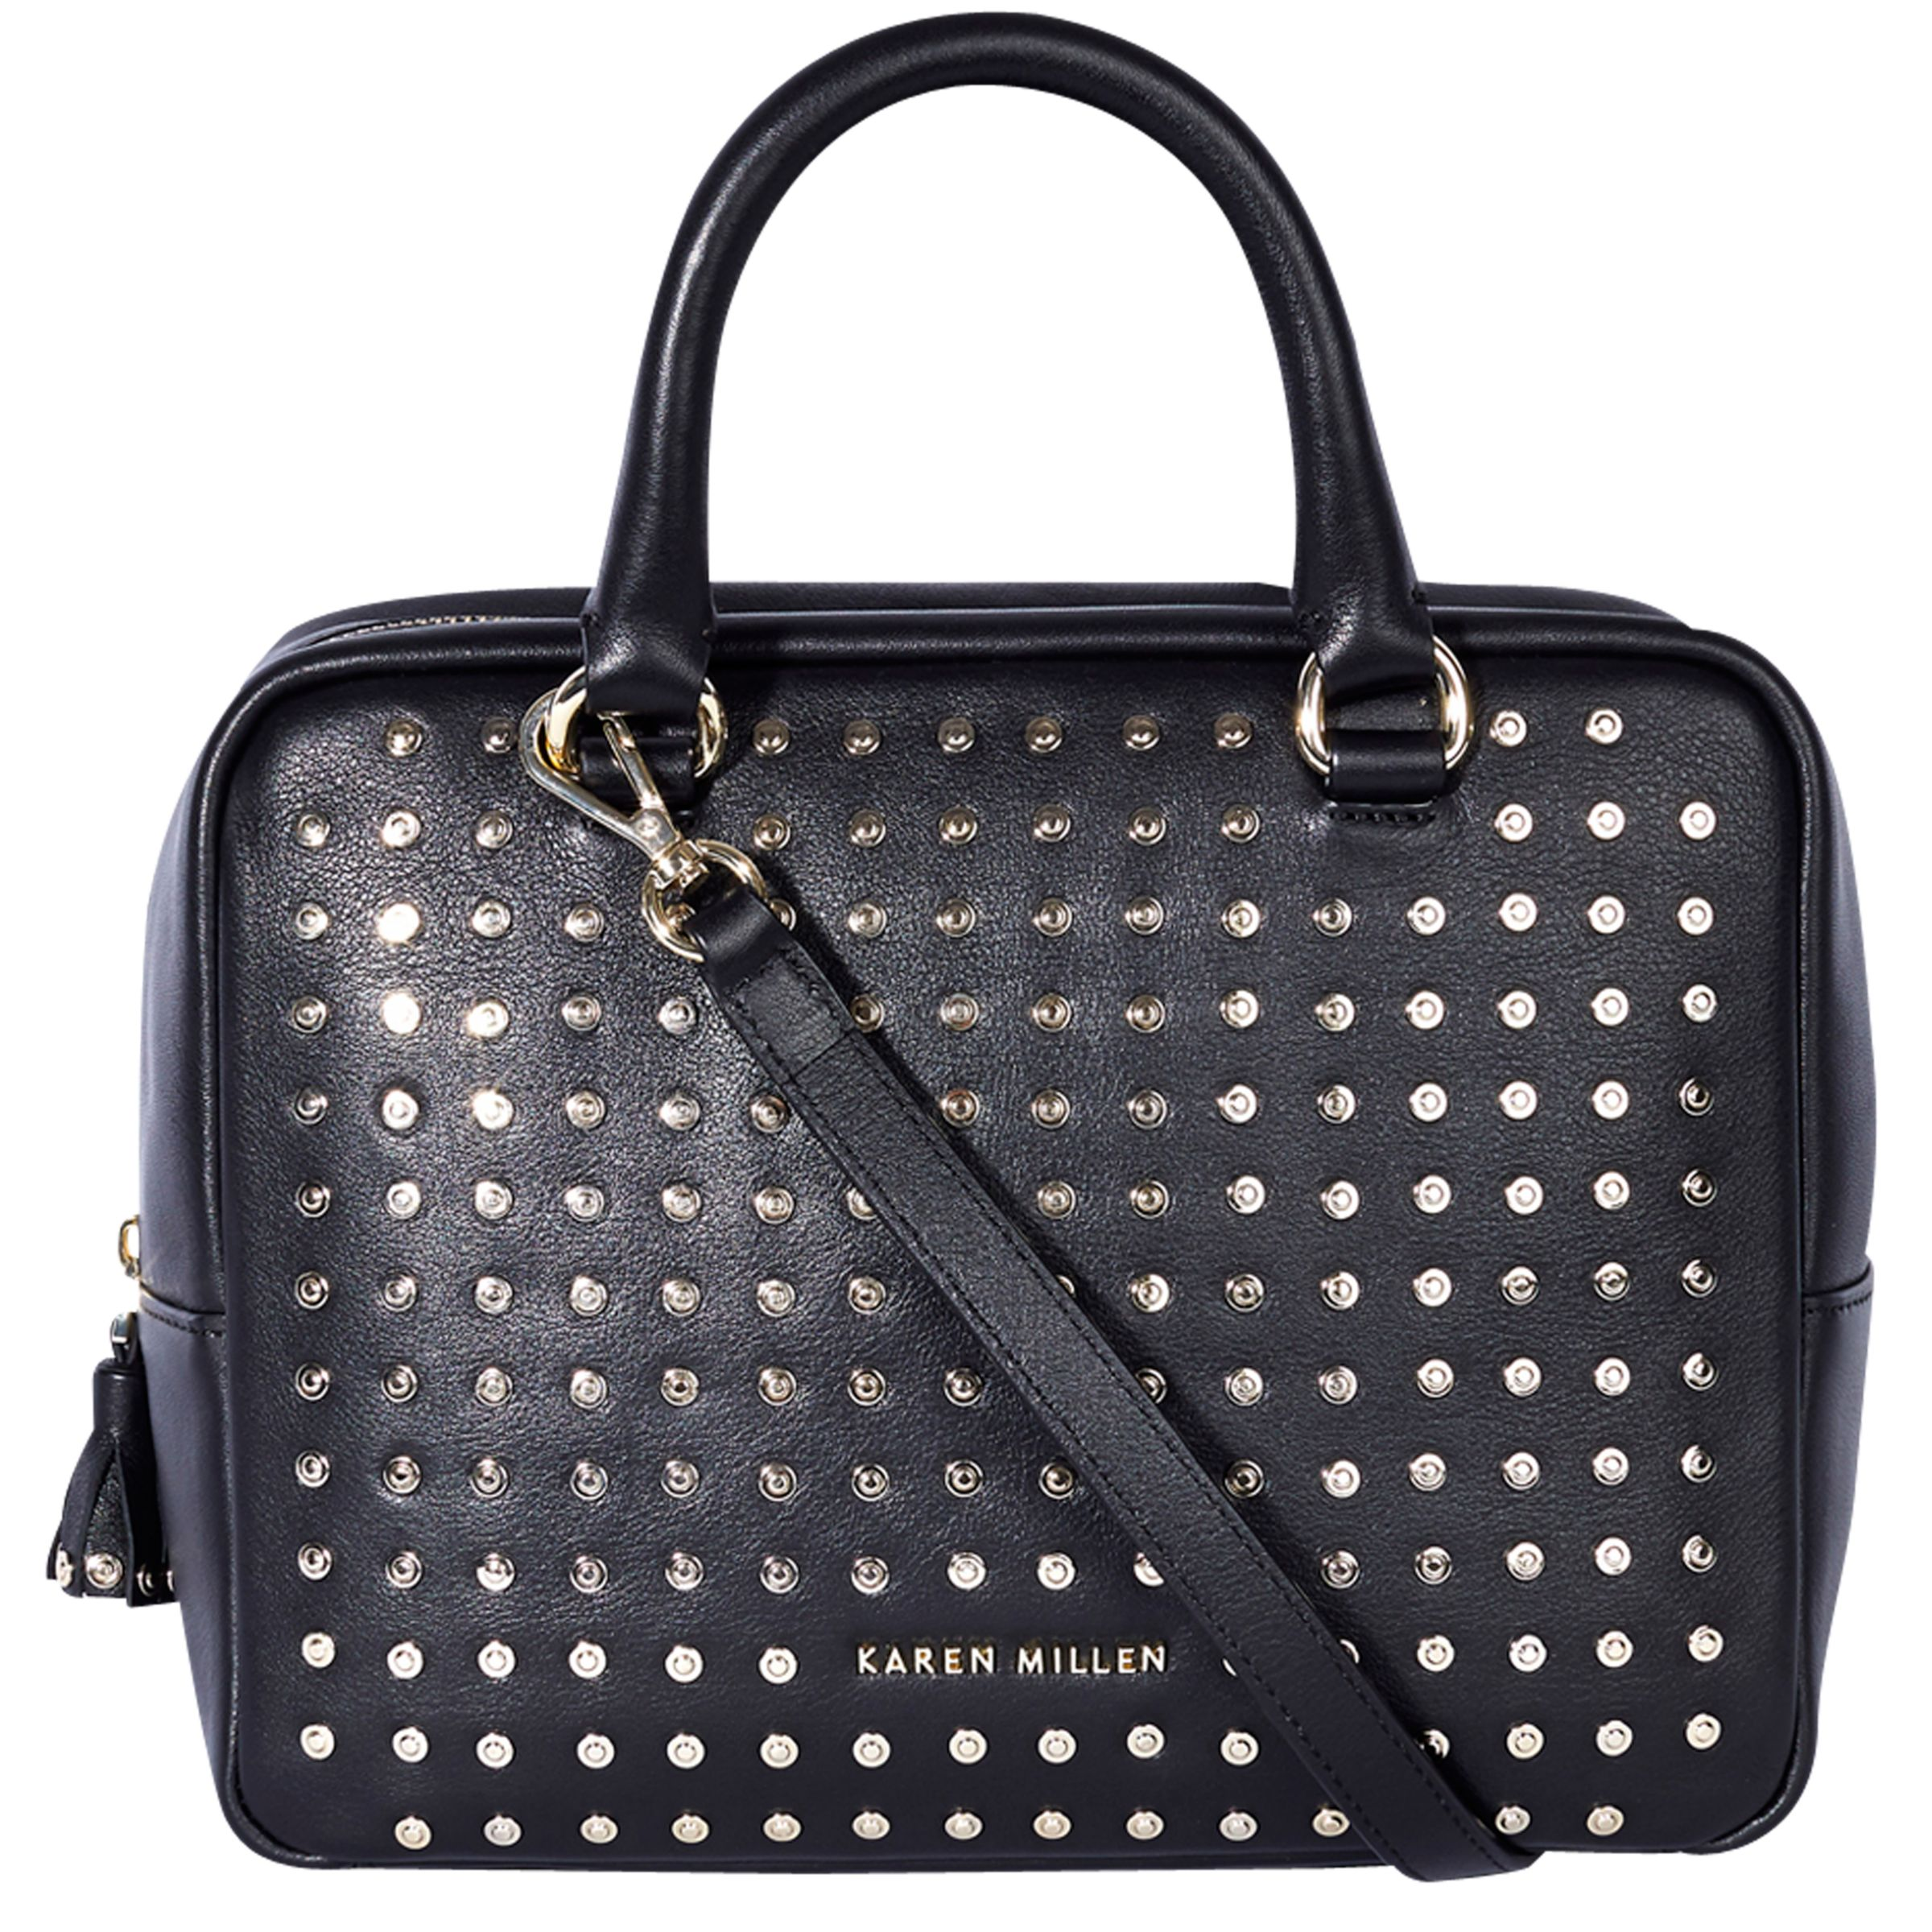 d9f0e58935 Karen Millen Large Leather Stud Bowling Bag, Black at John Lewis & Partners